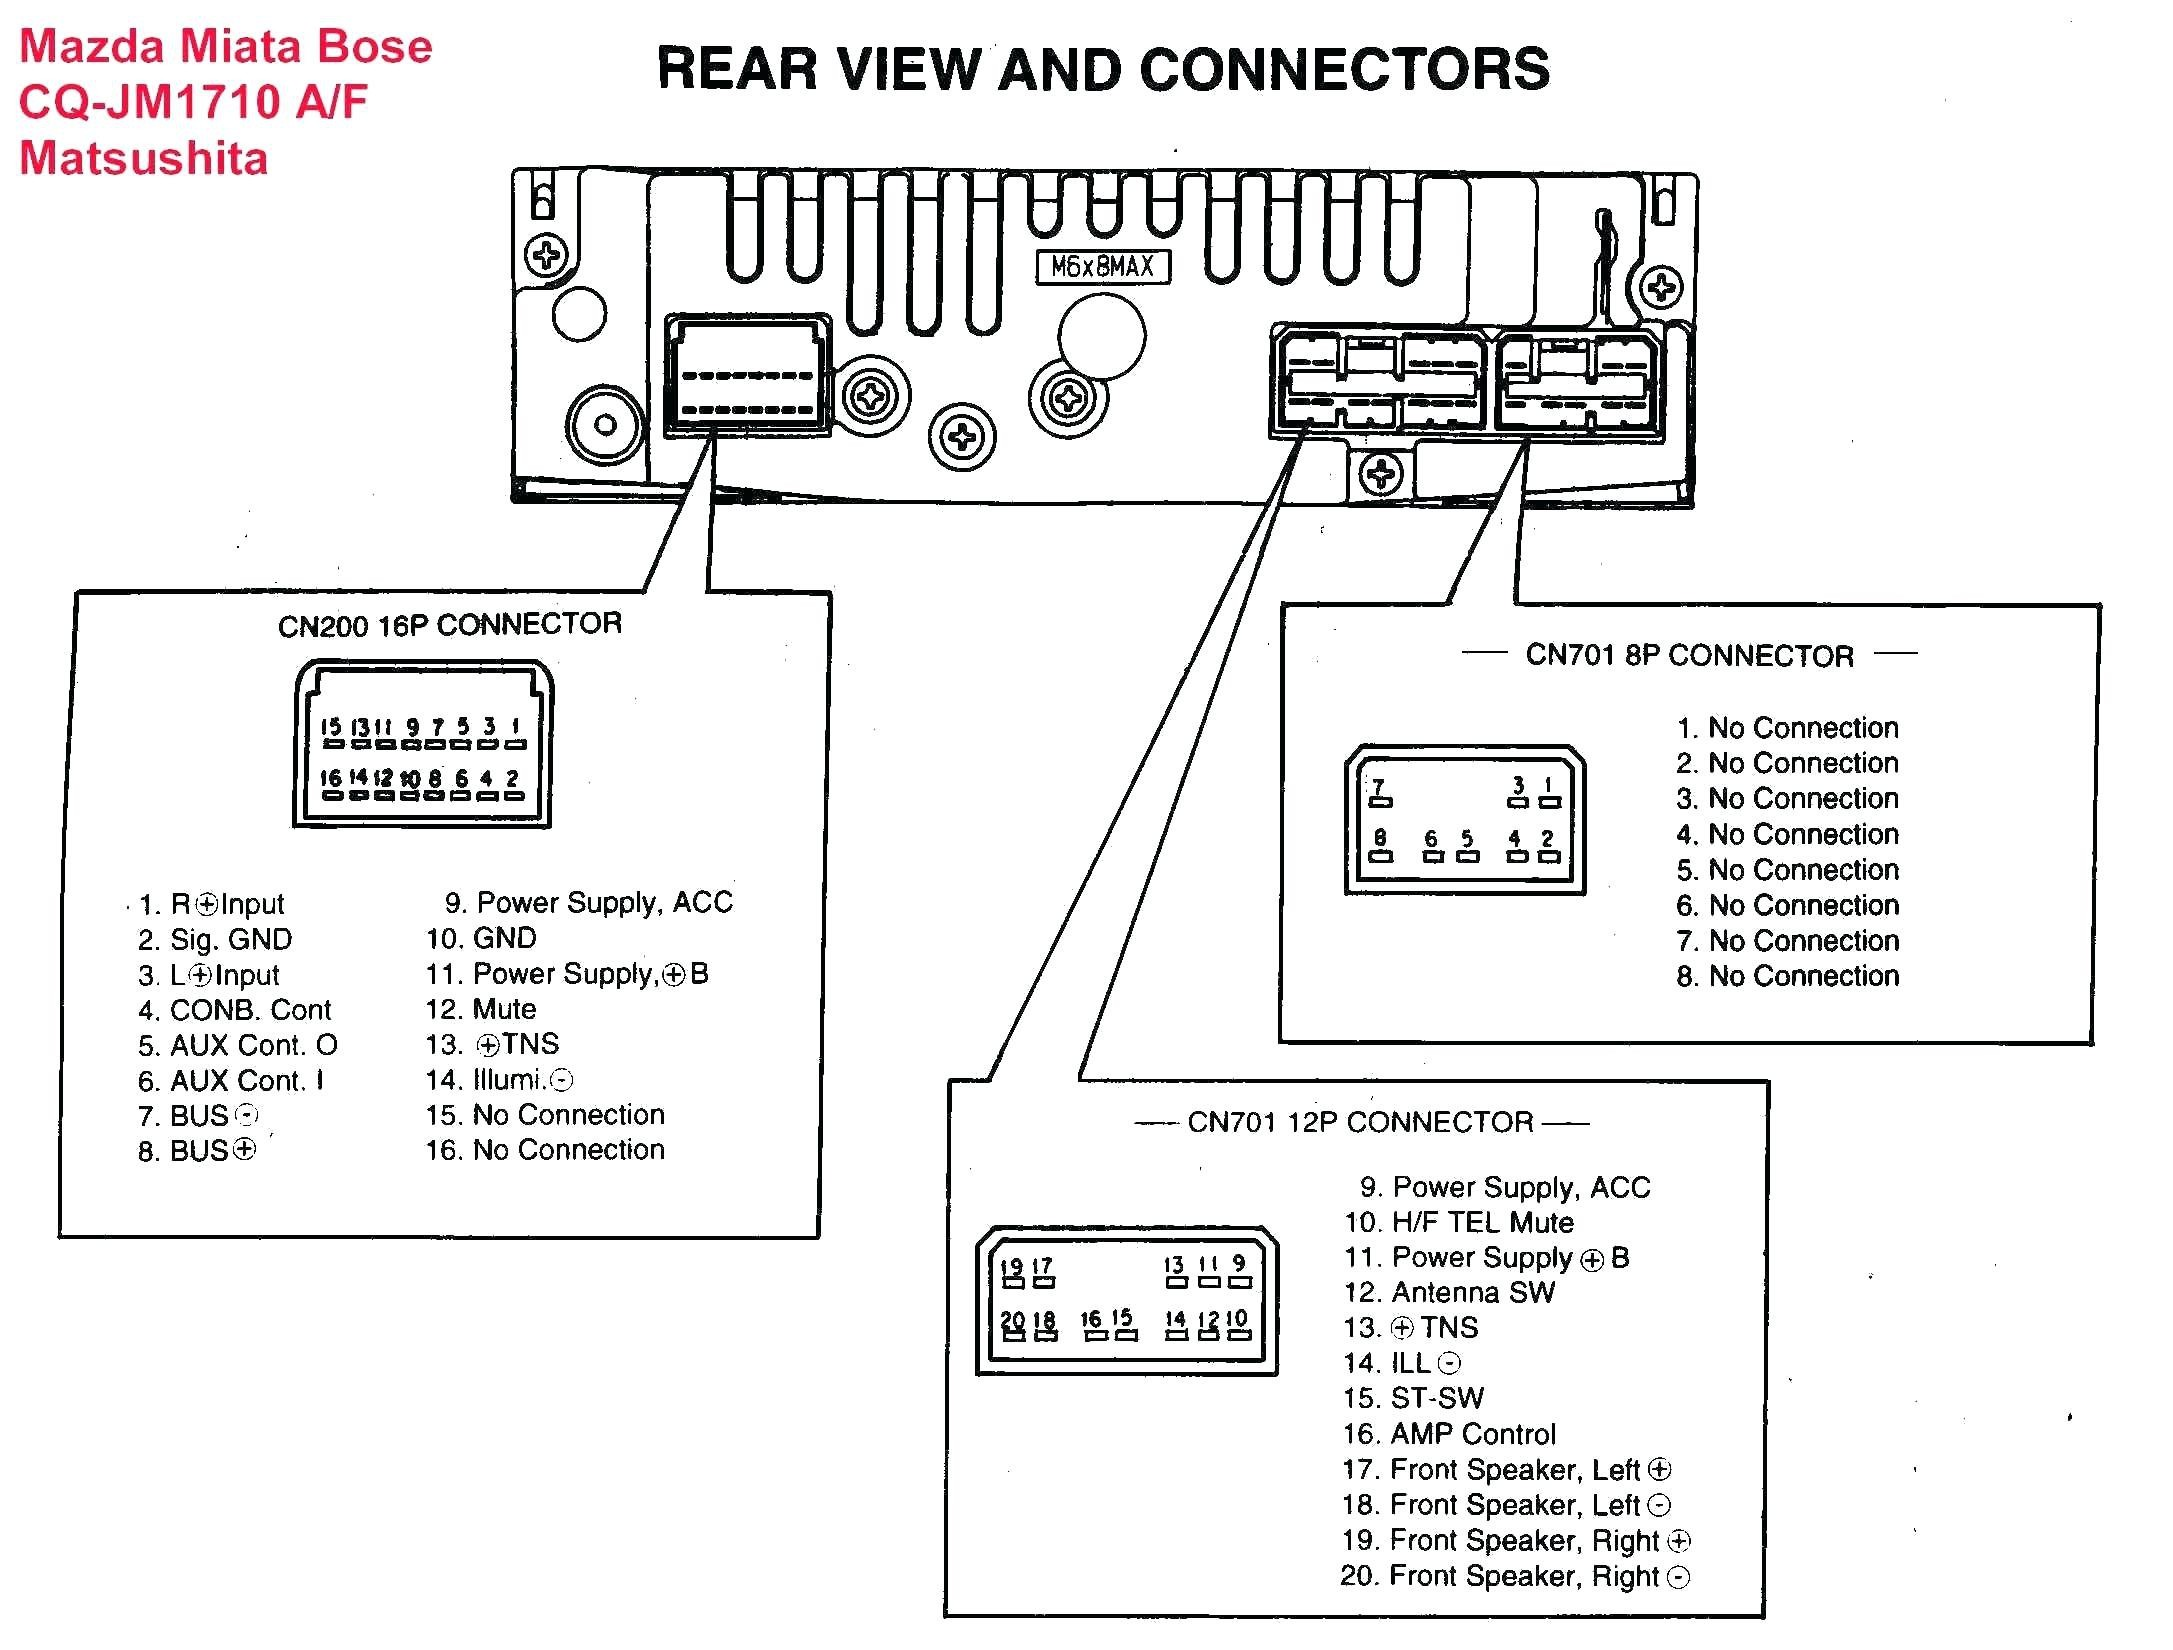 Sony Wiring Diagram Car Stereo Elegant sony Car Stereo Wiring Diagram Wiring Of Sony Wiring Diagram Car Stereo